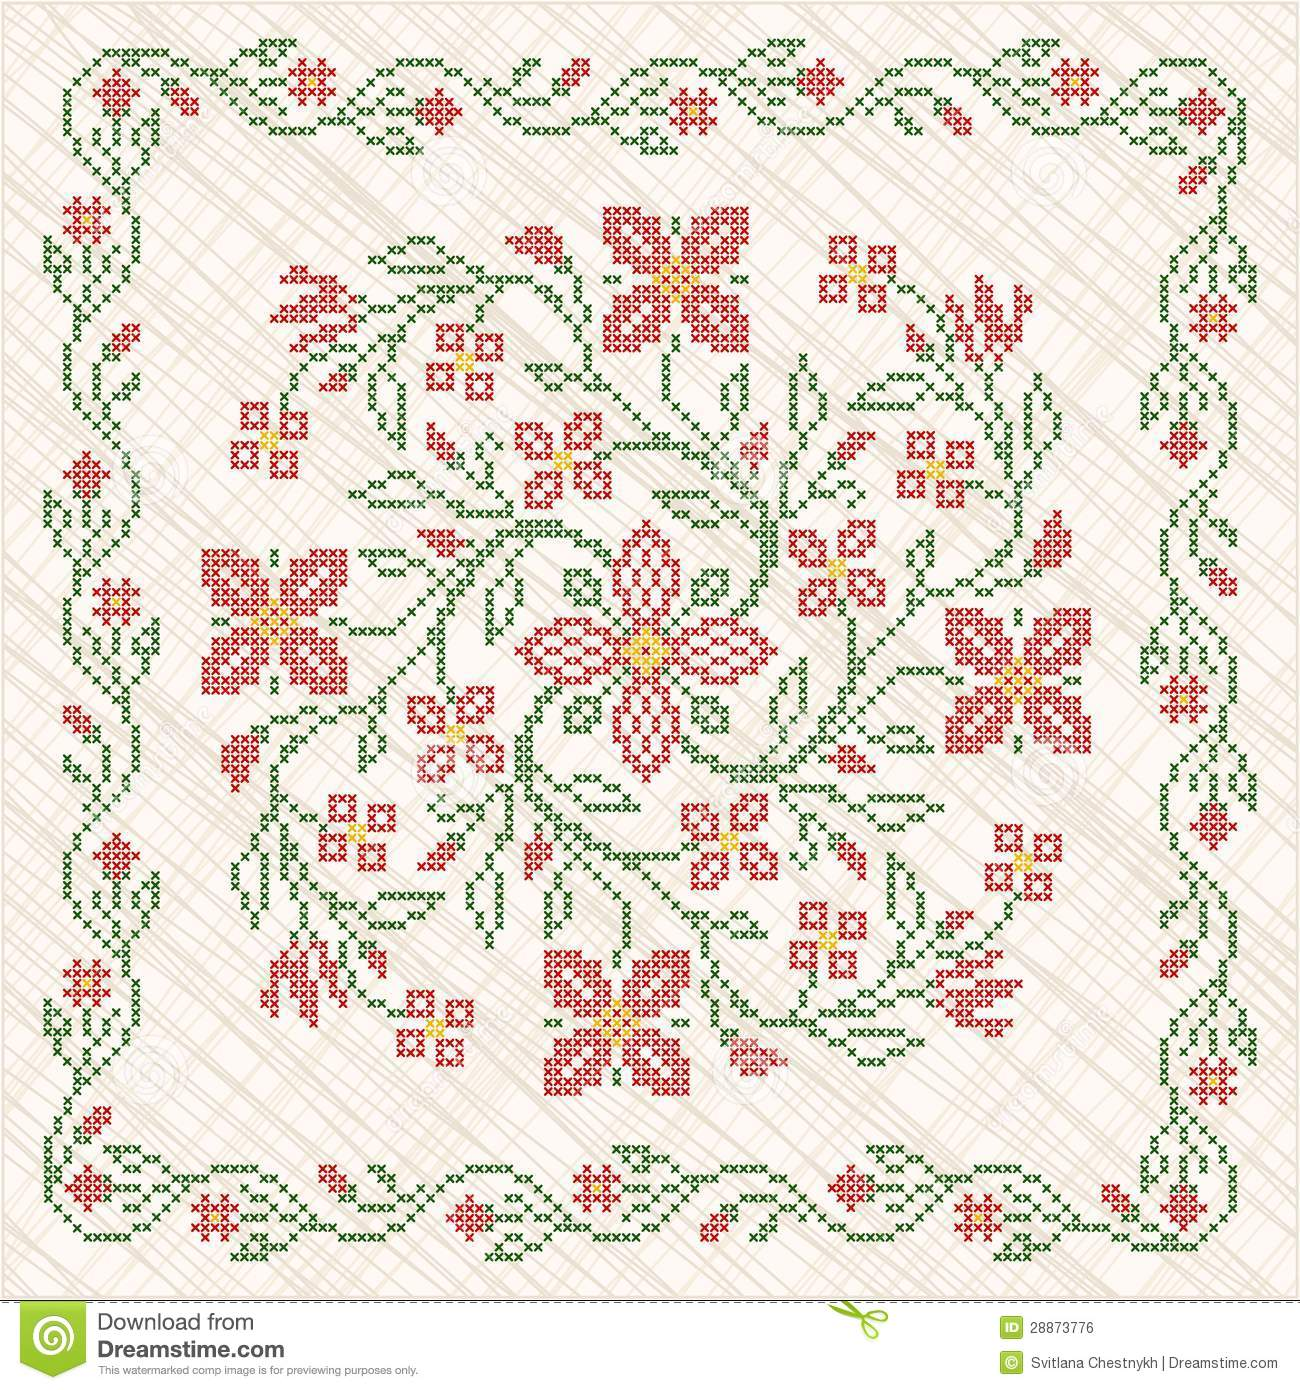 Cross-stitch Embroidery In Ukrainian Style Stock Vector ...